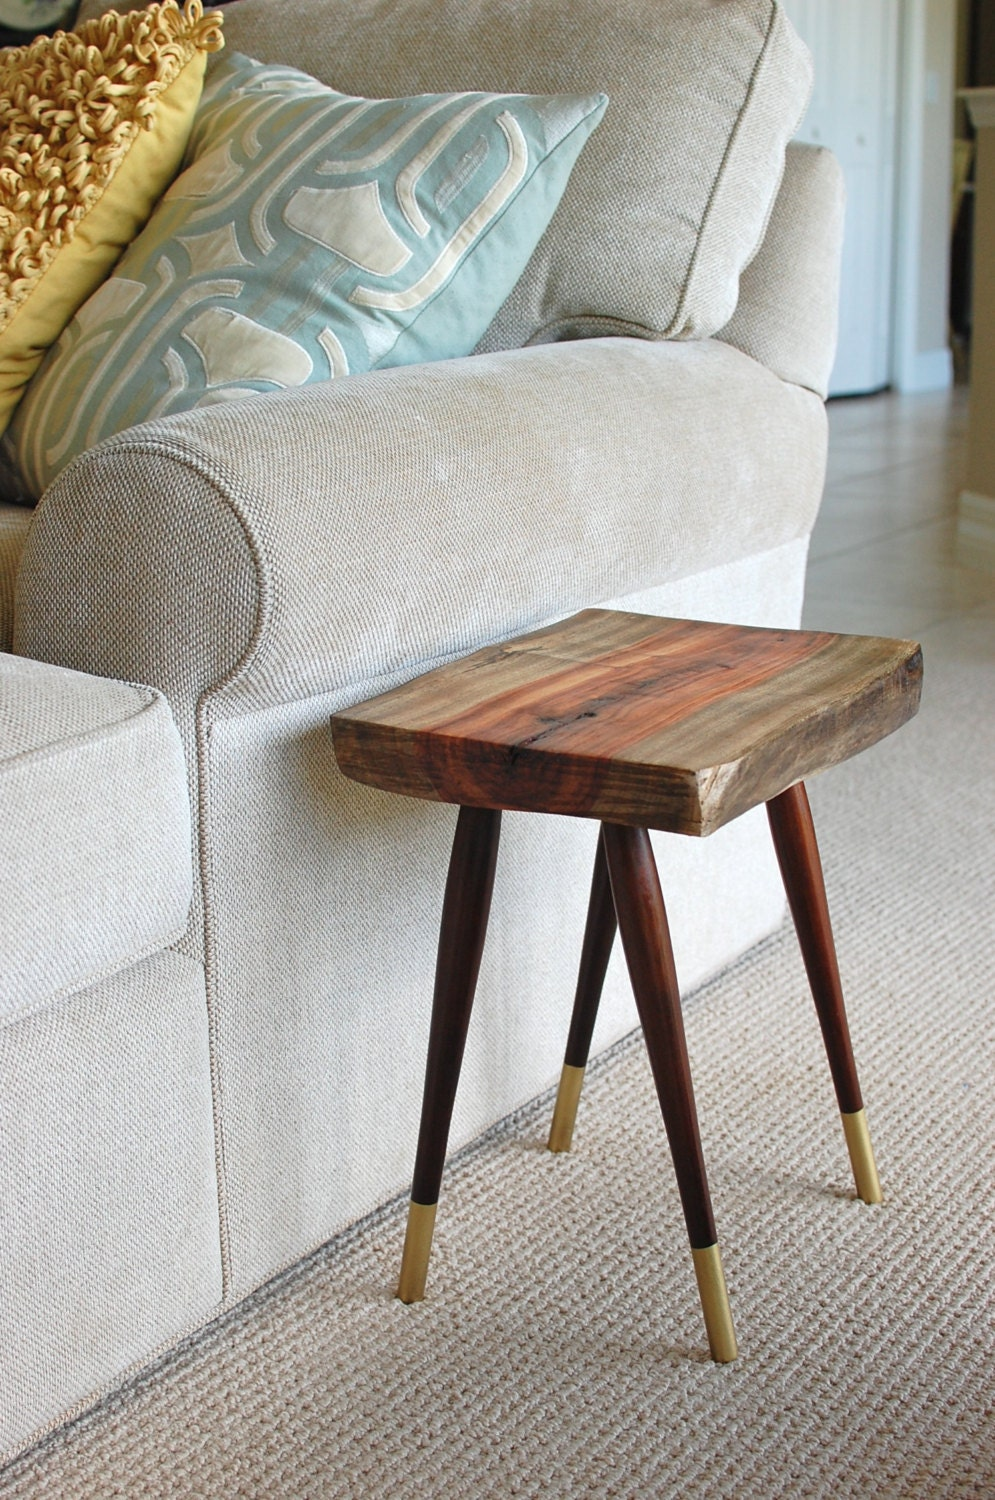 Tree stump slice side table reclaimed wood by for Wood stump end table